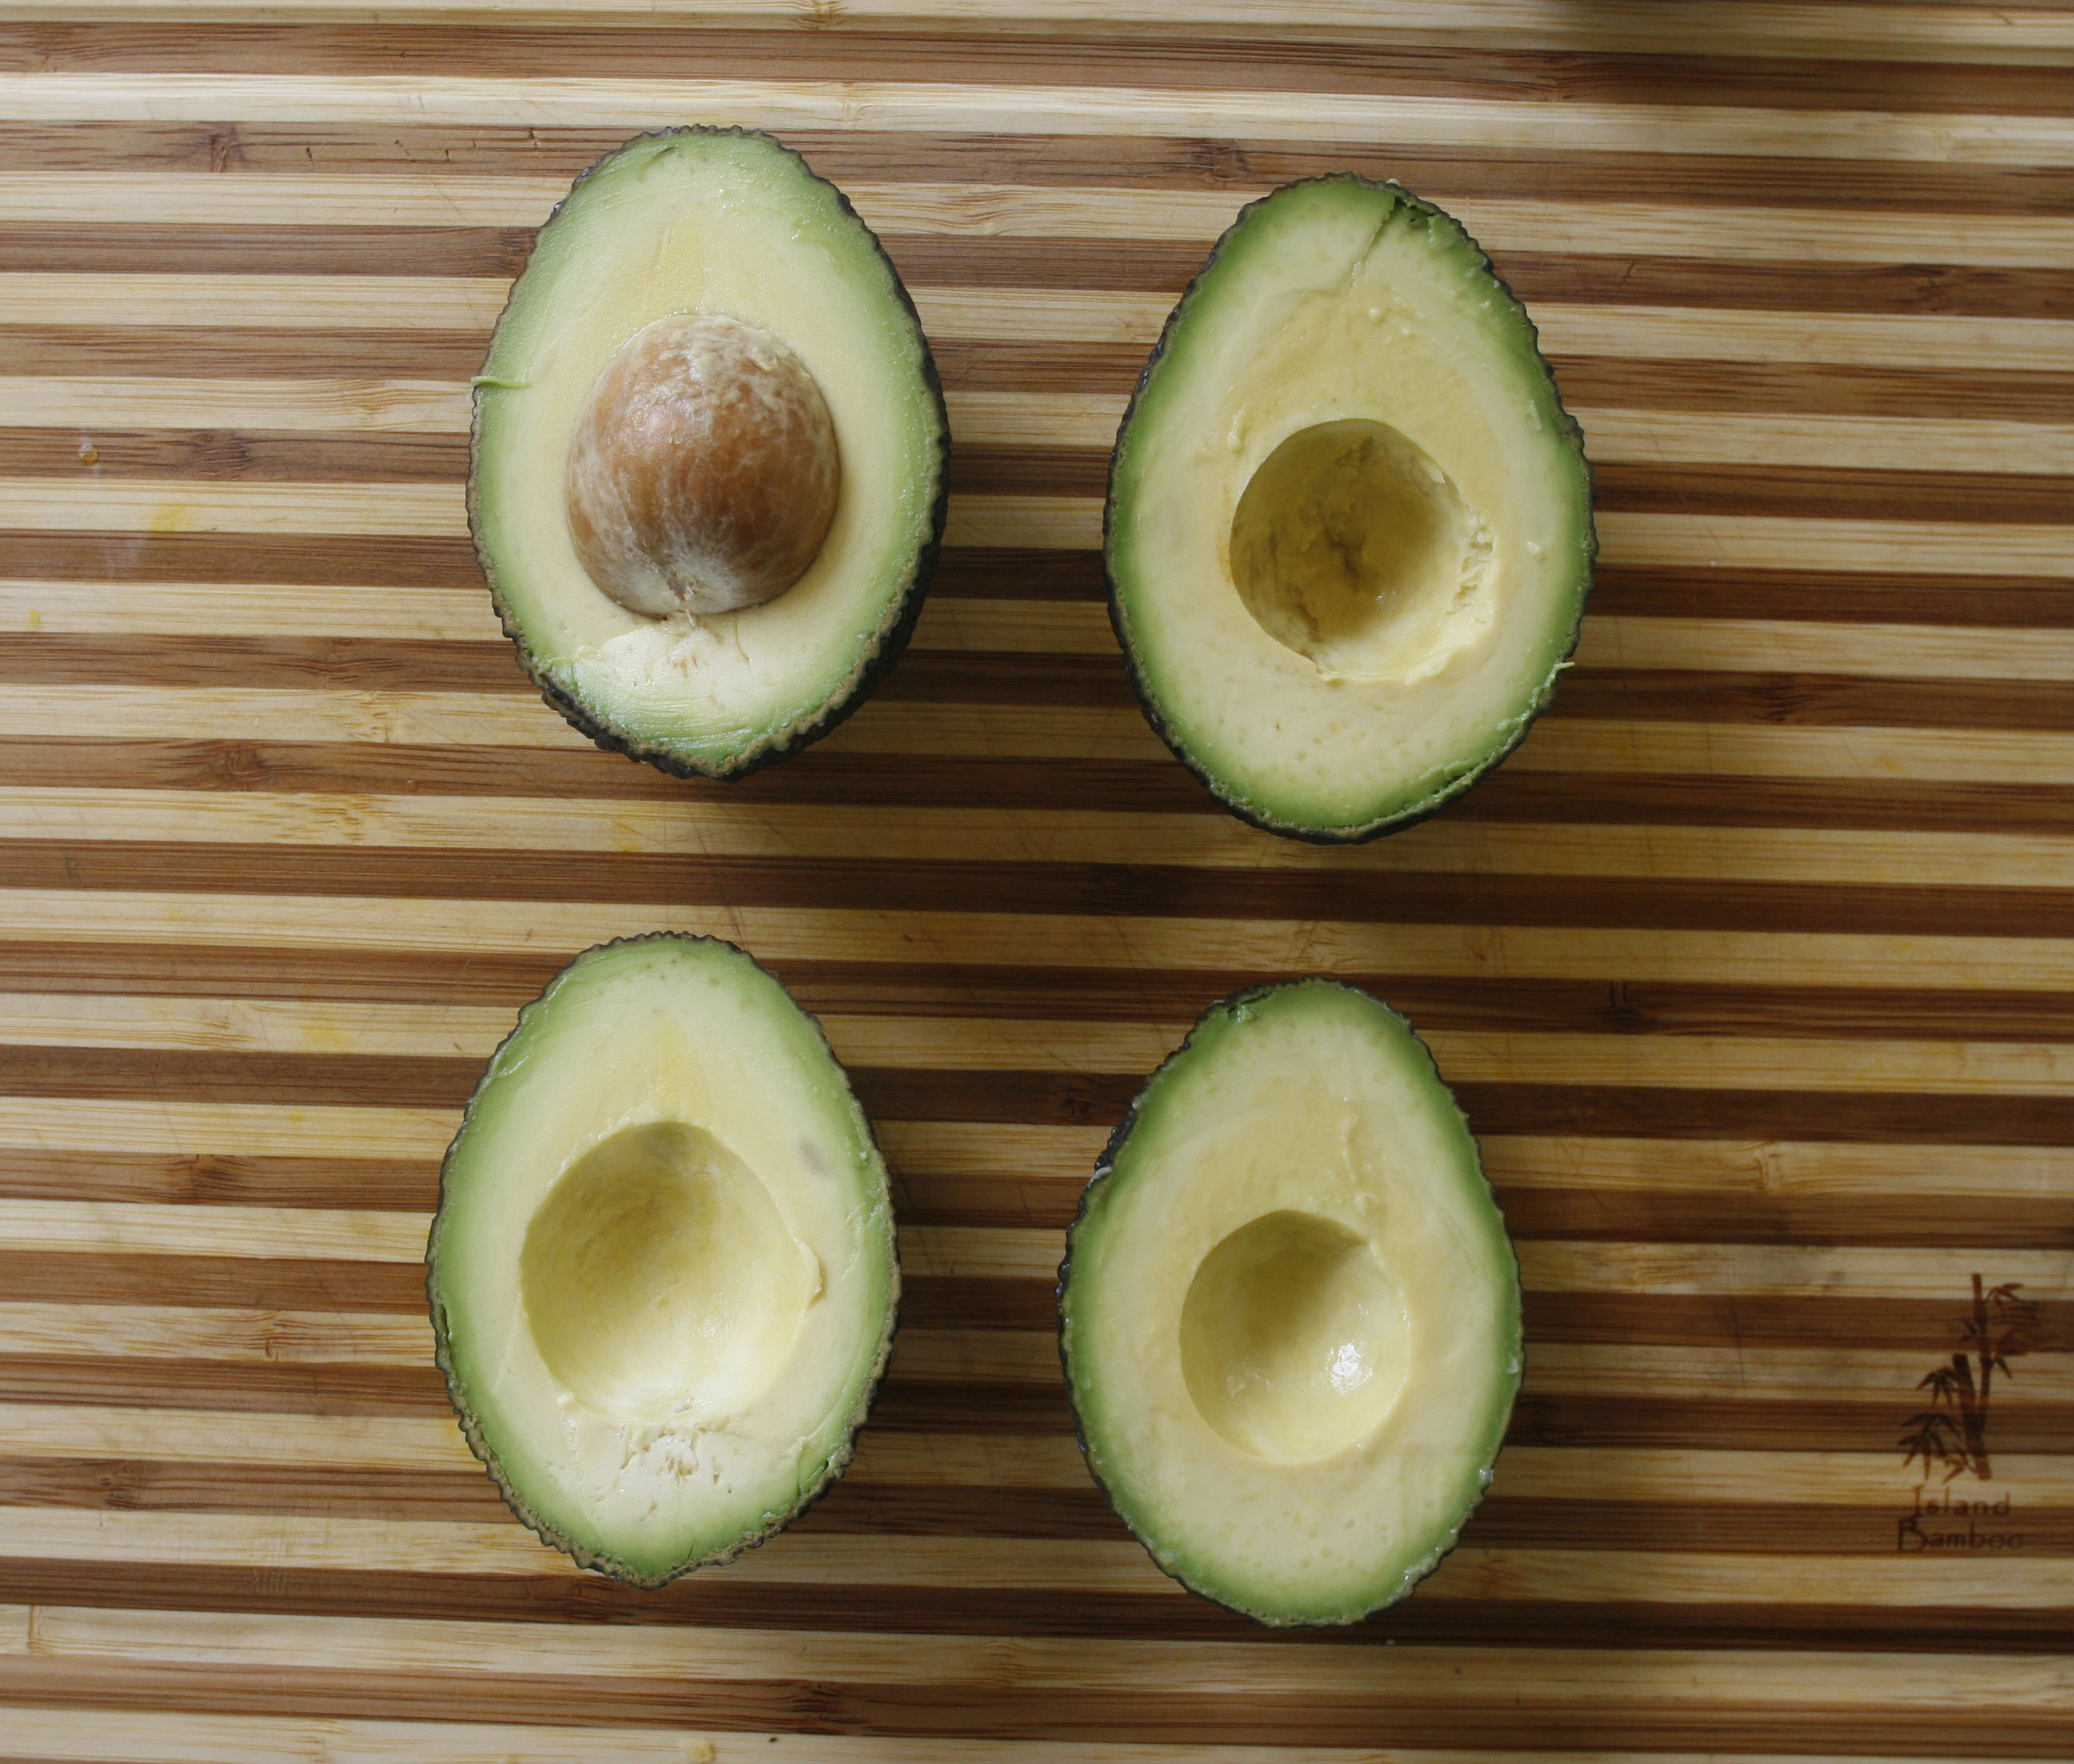 Preventing Avocados From Browning